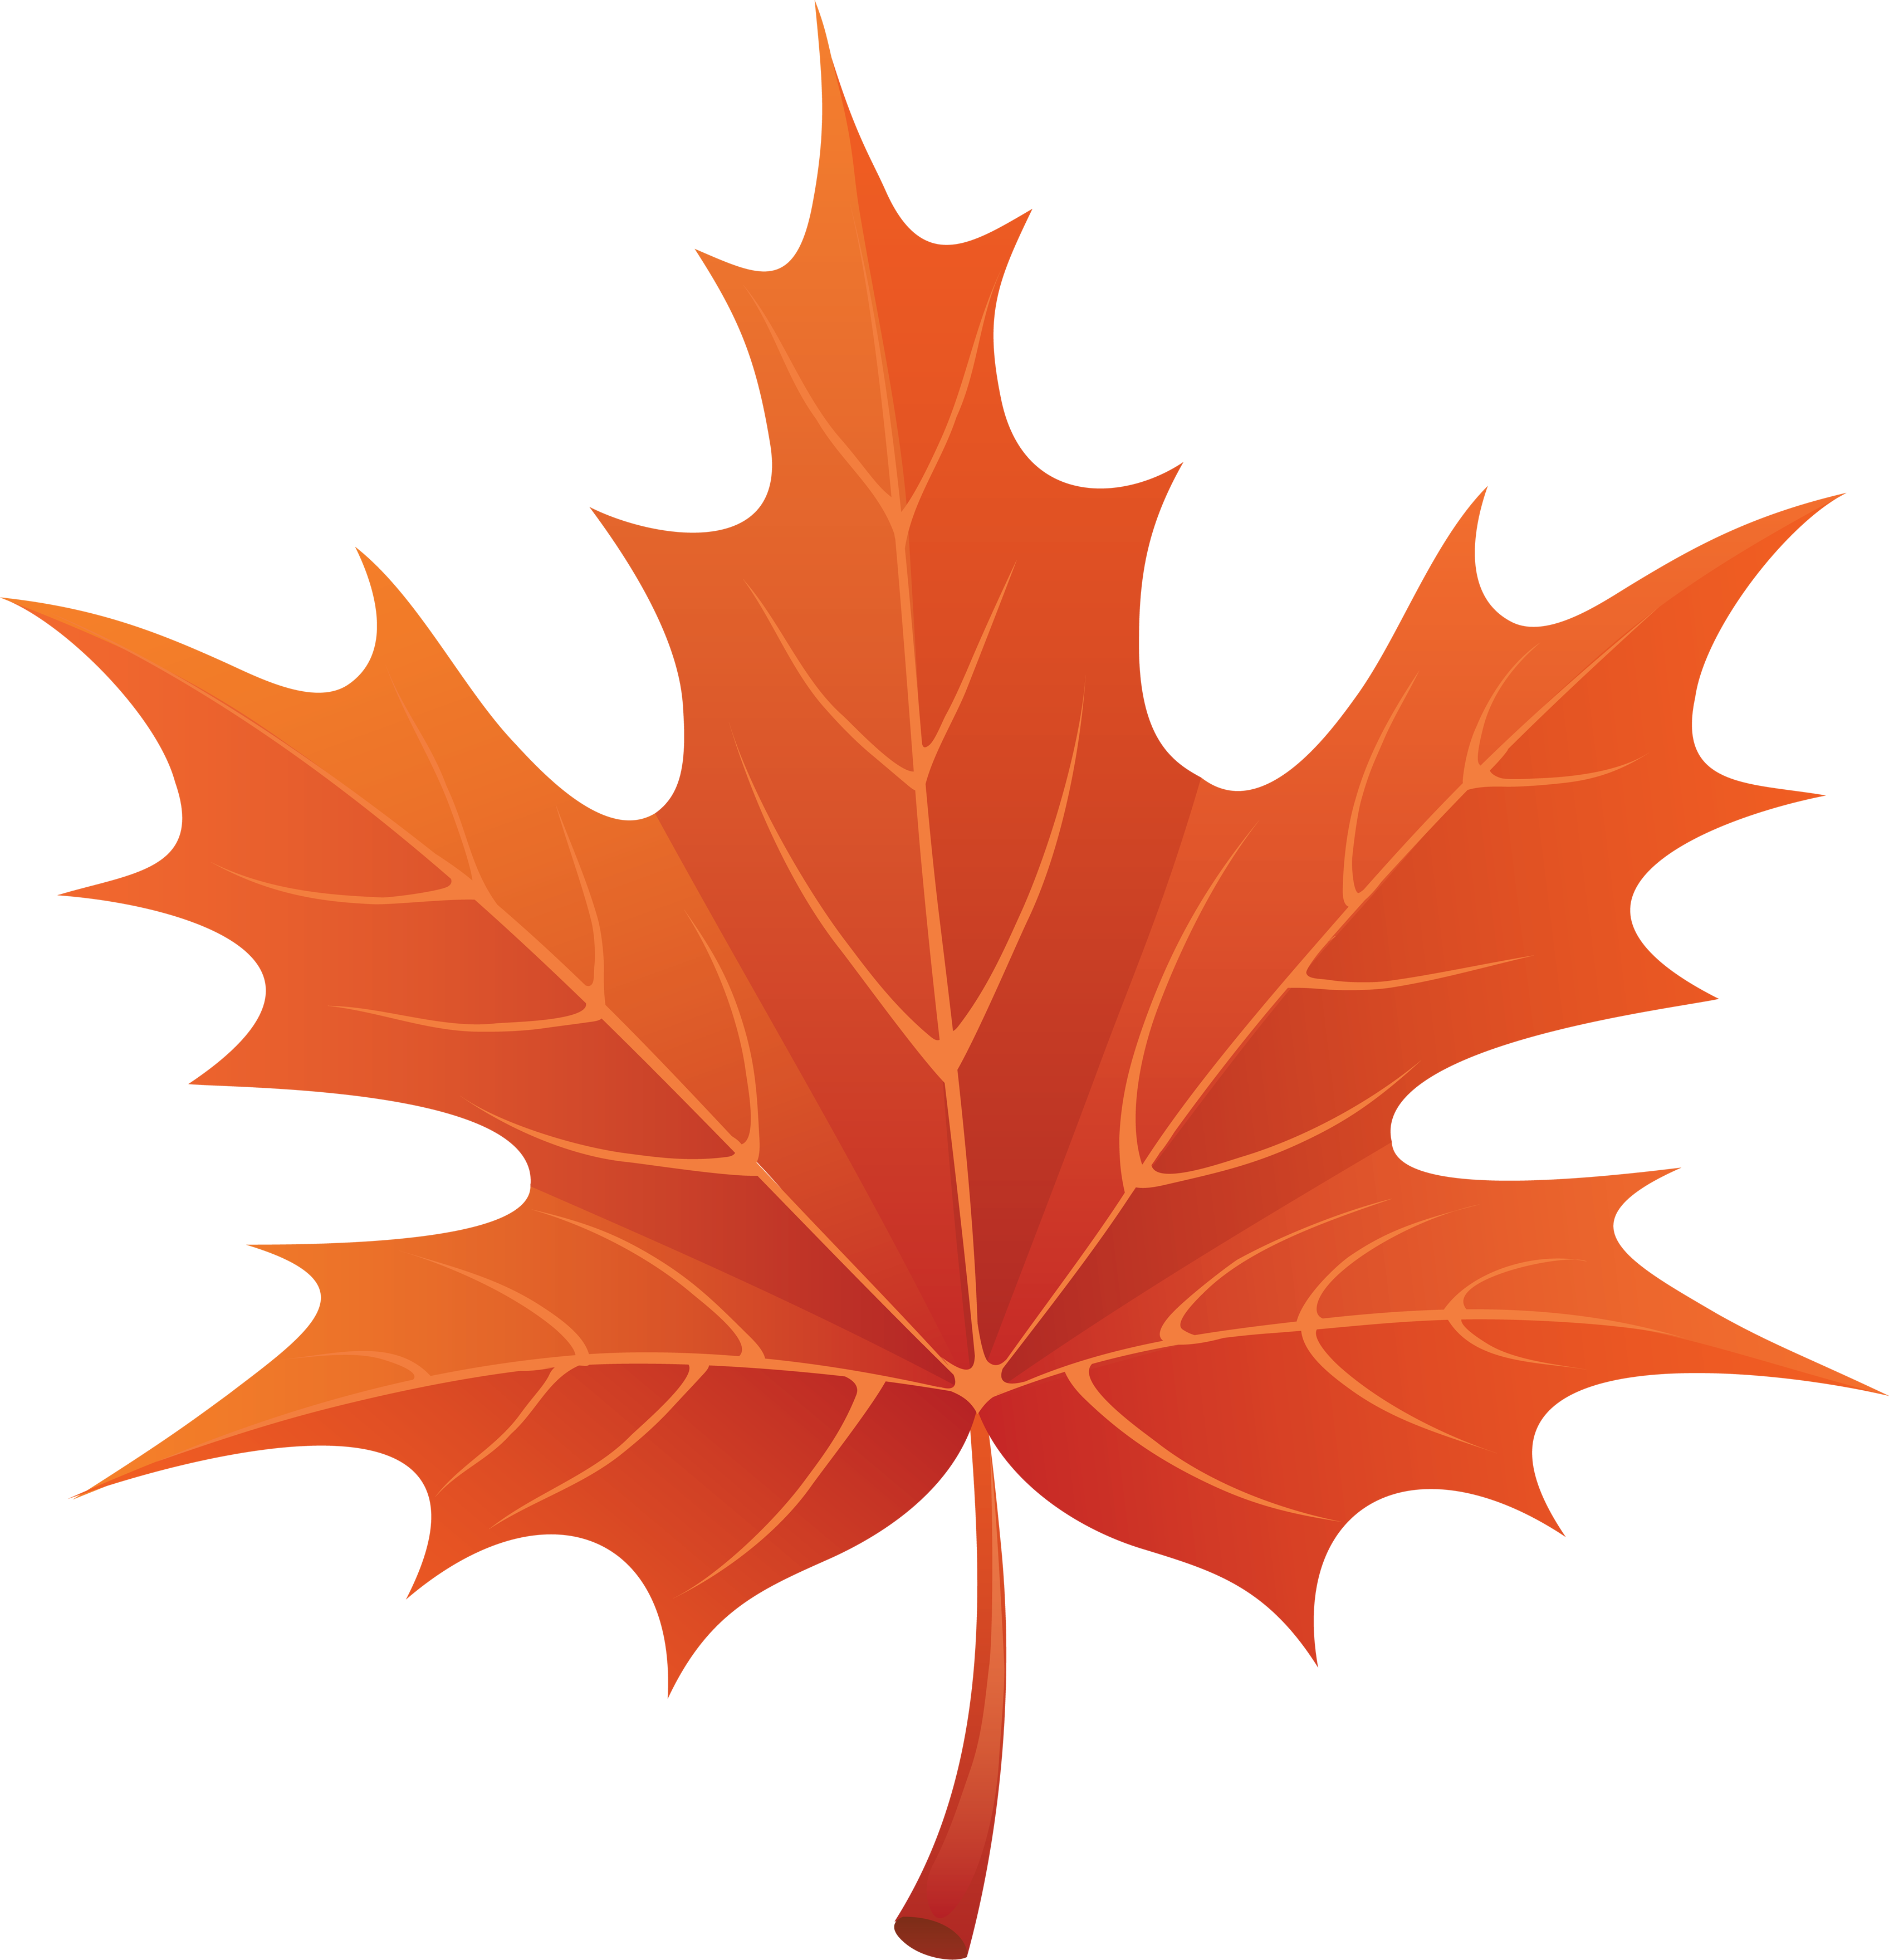 Fall leaves autumn leaves images free yellow leaves pictures clip ...